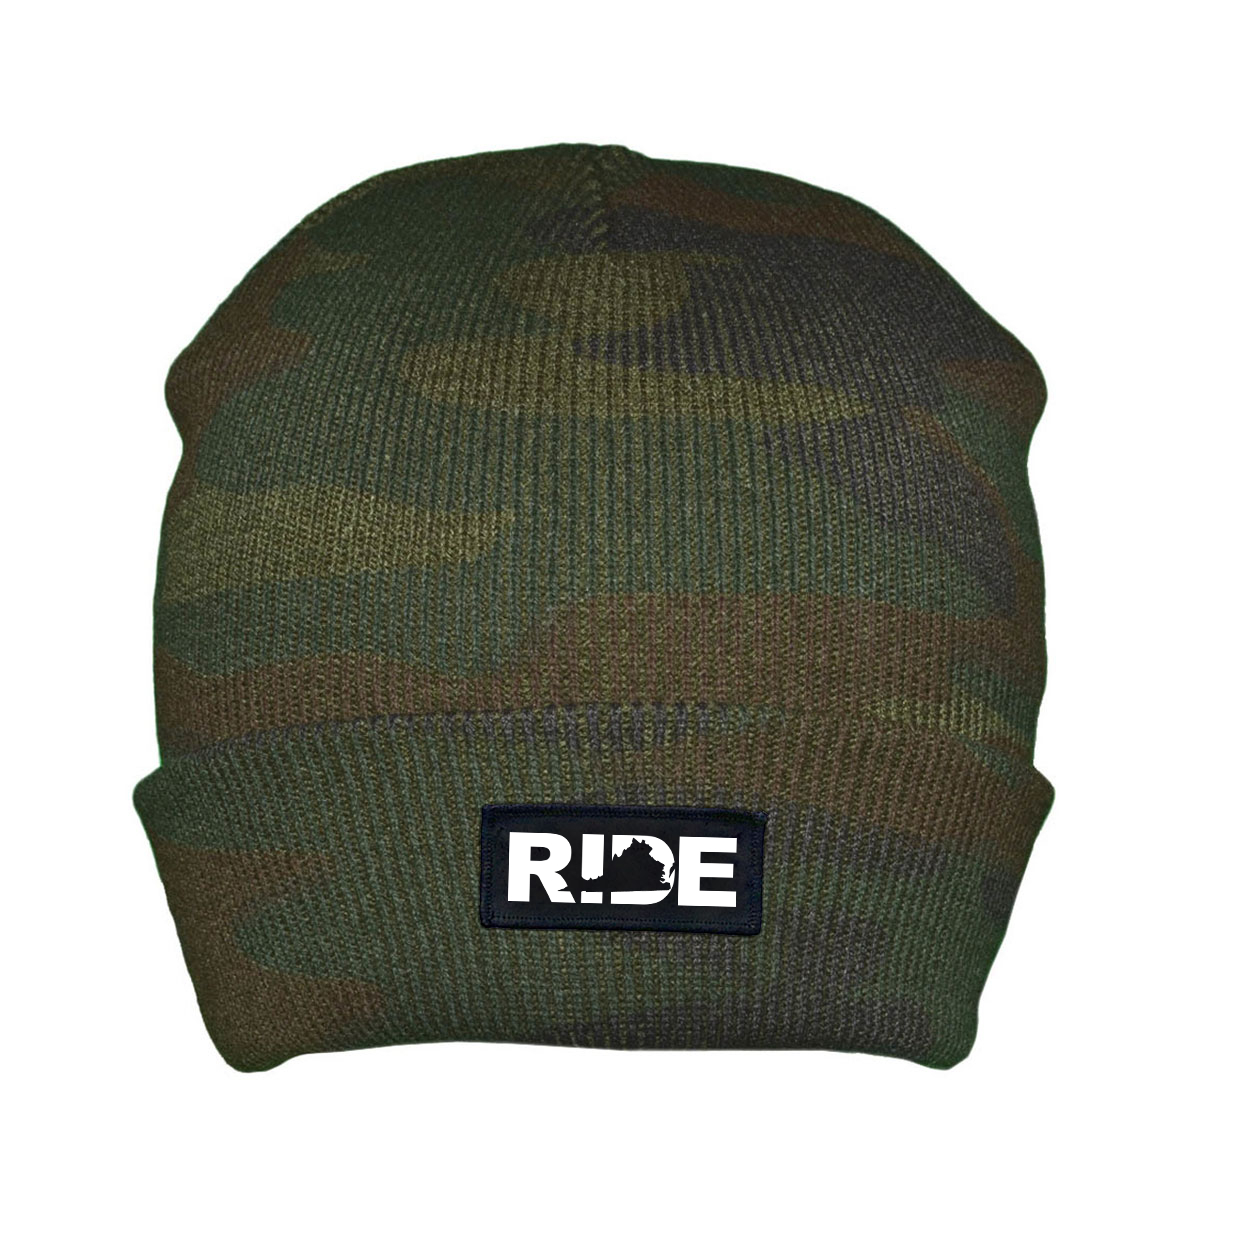 Ride Virginia Night Out Woven Patch Roll Up Skully Beanie Camo (White Logo)